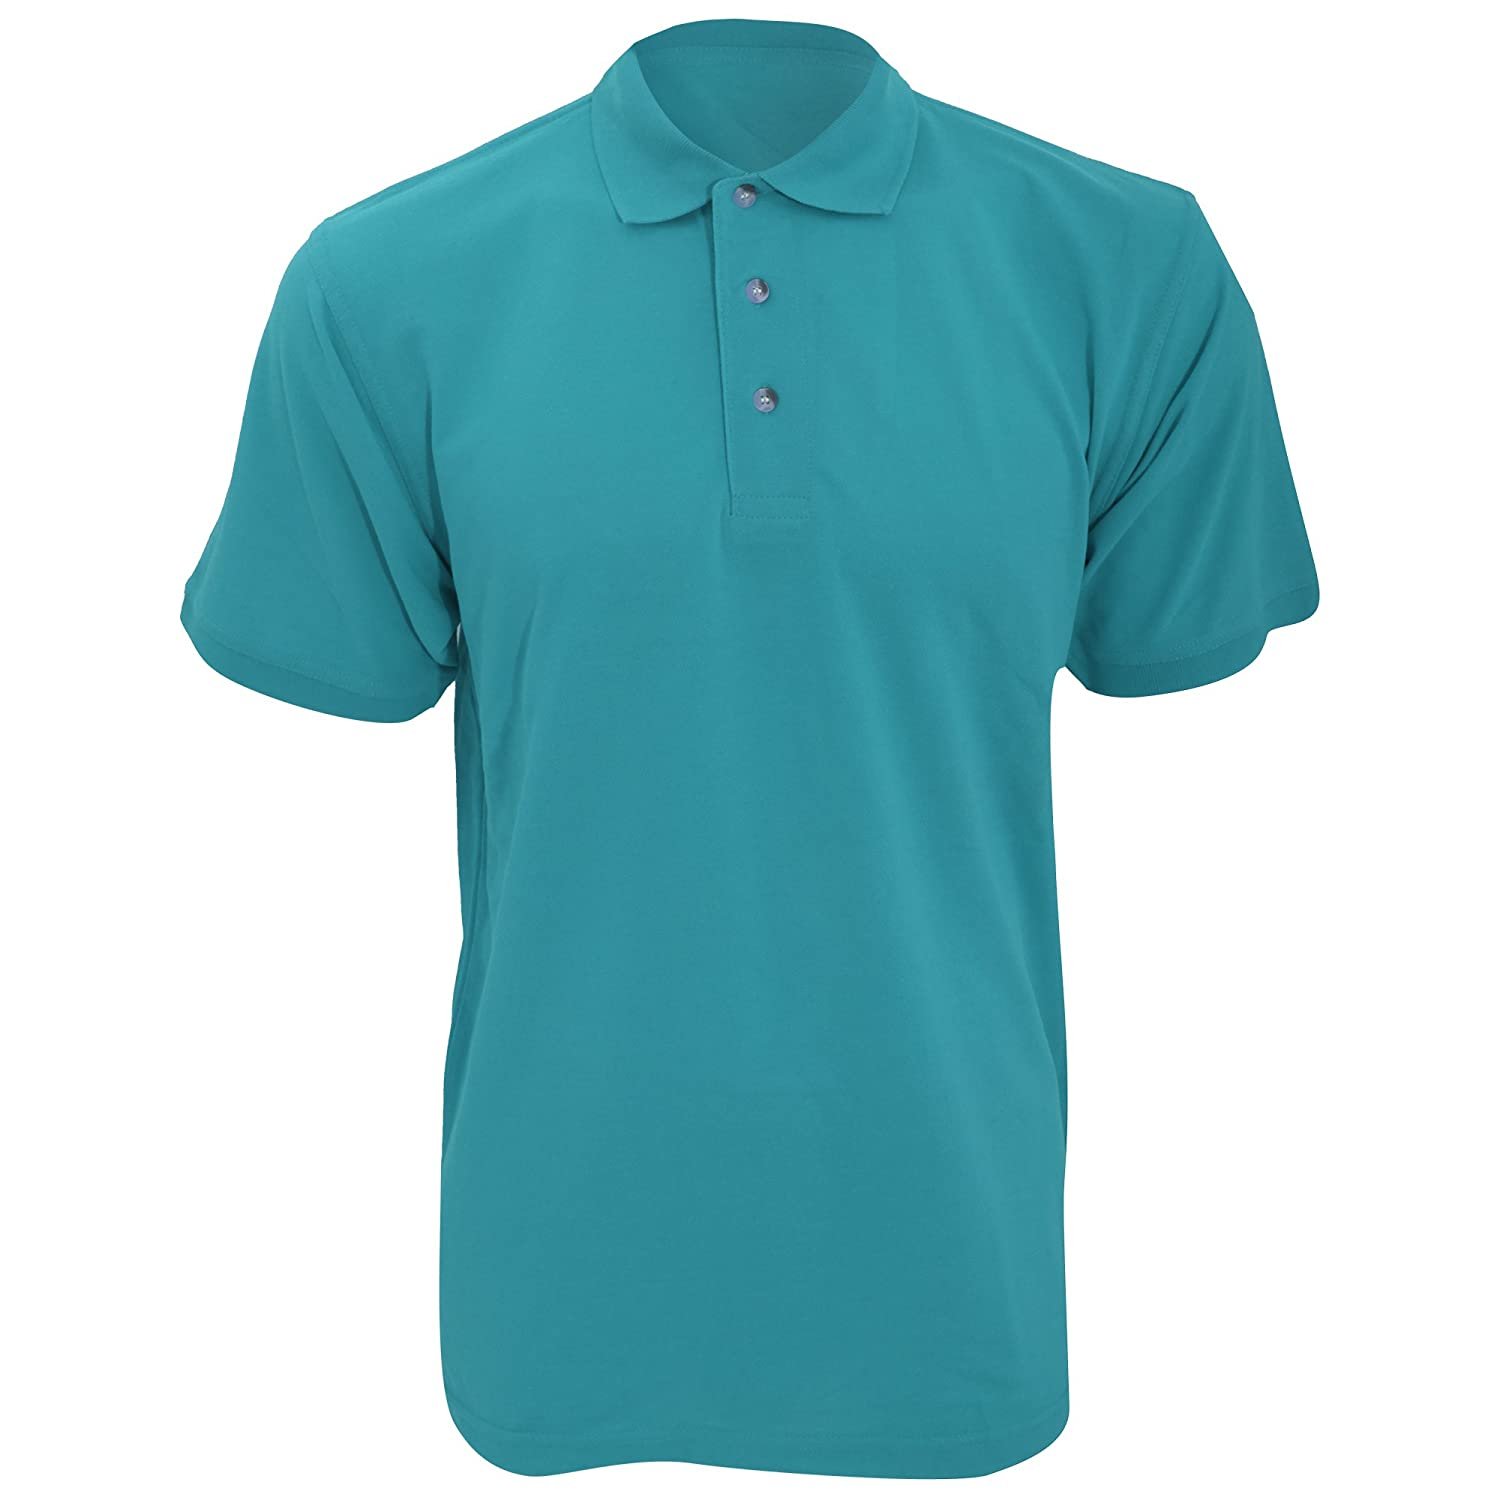 Kustom Kit Workwear Mens Short Sleeve Polo Shirt (3XL) (Aqua) UTBC606_6